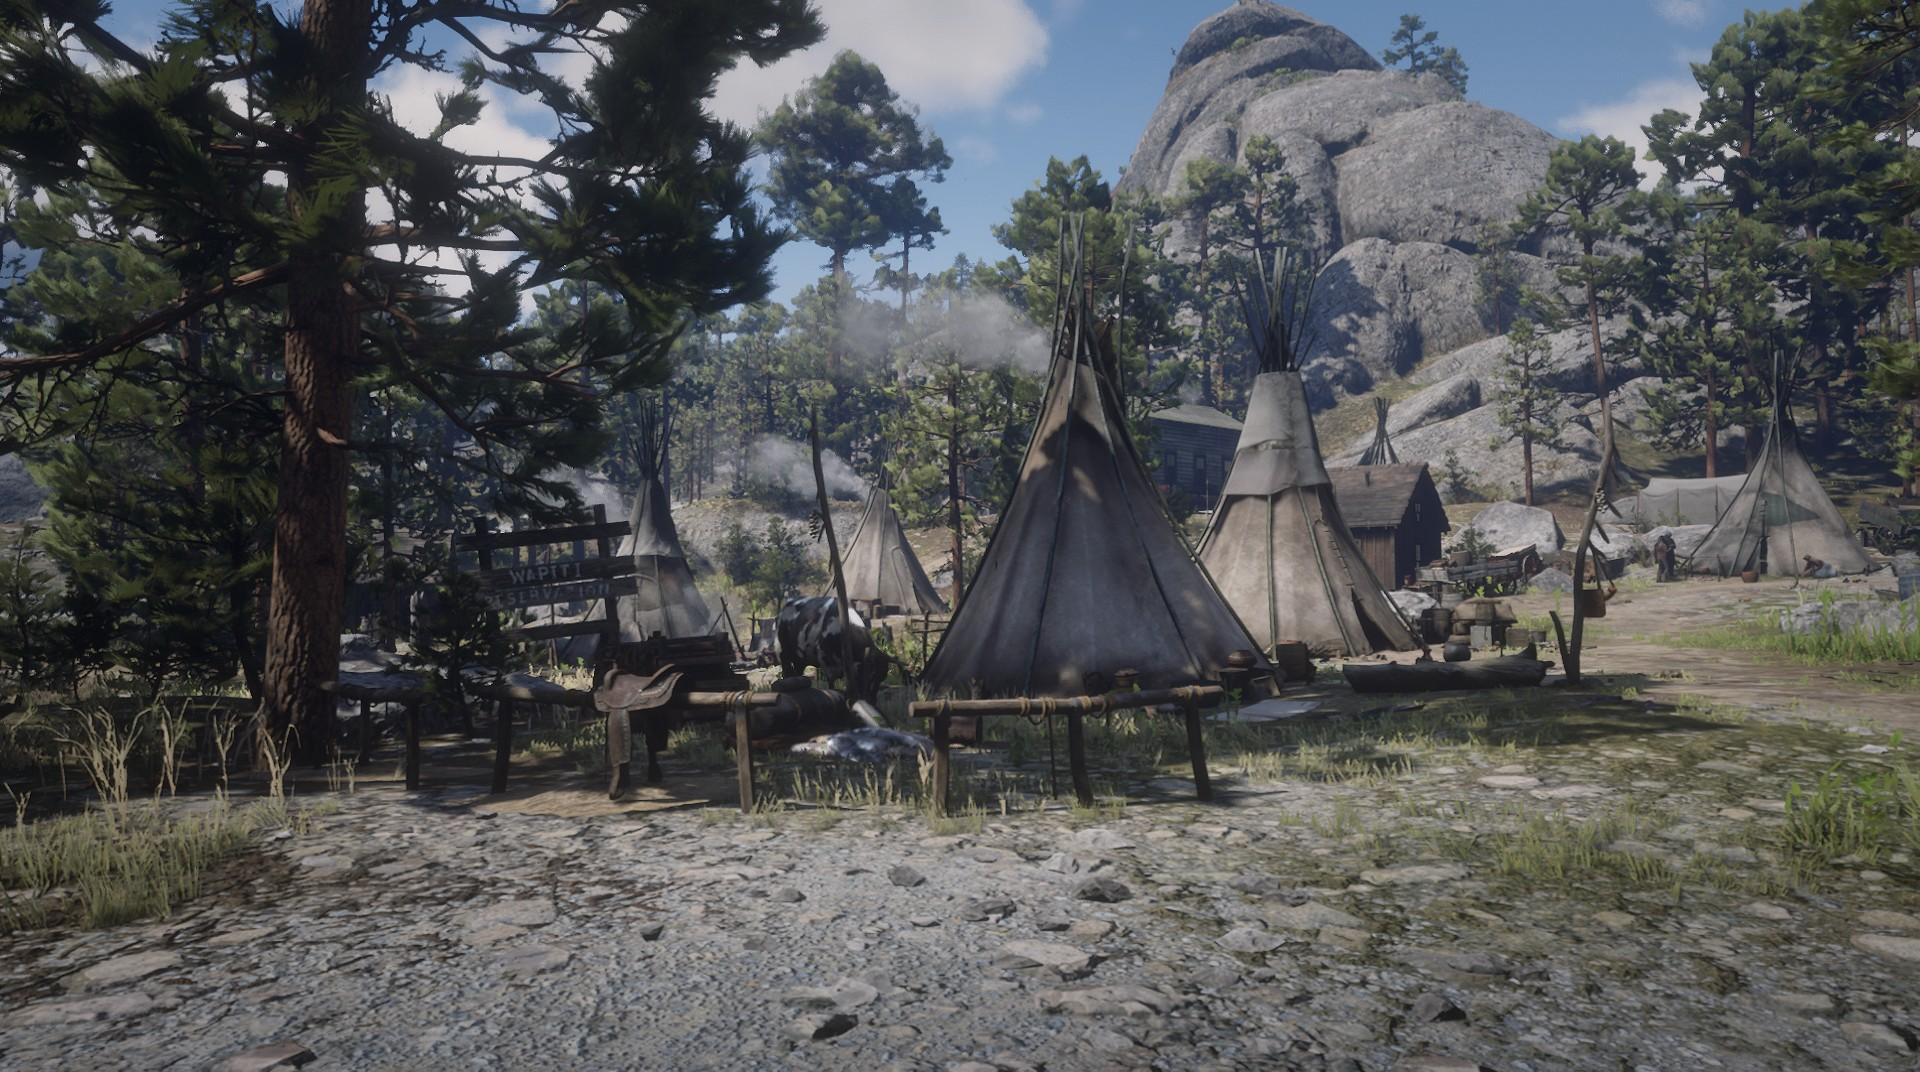 Wapiti Indian Reservation | Red Dead Wiki | FANDOM powered